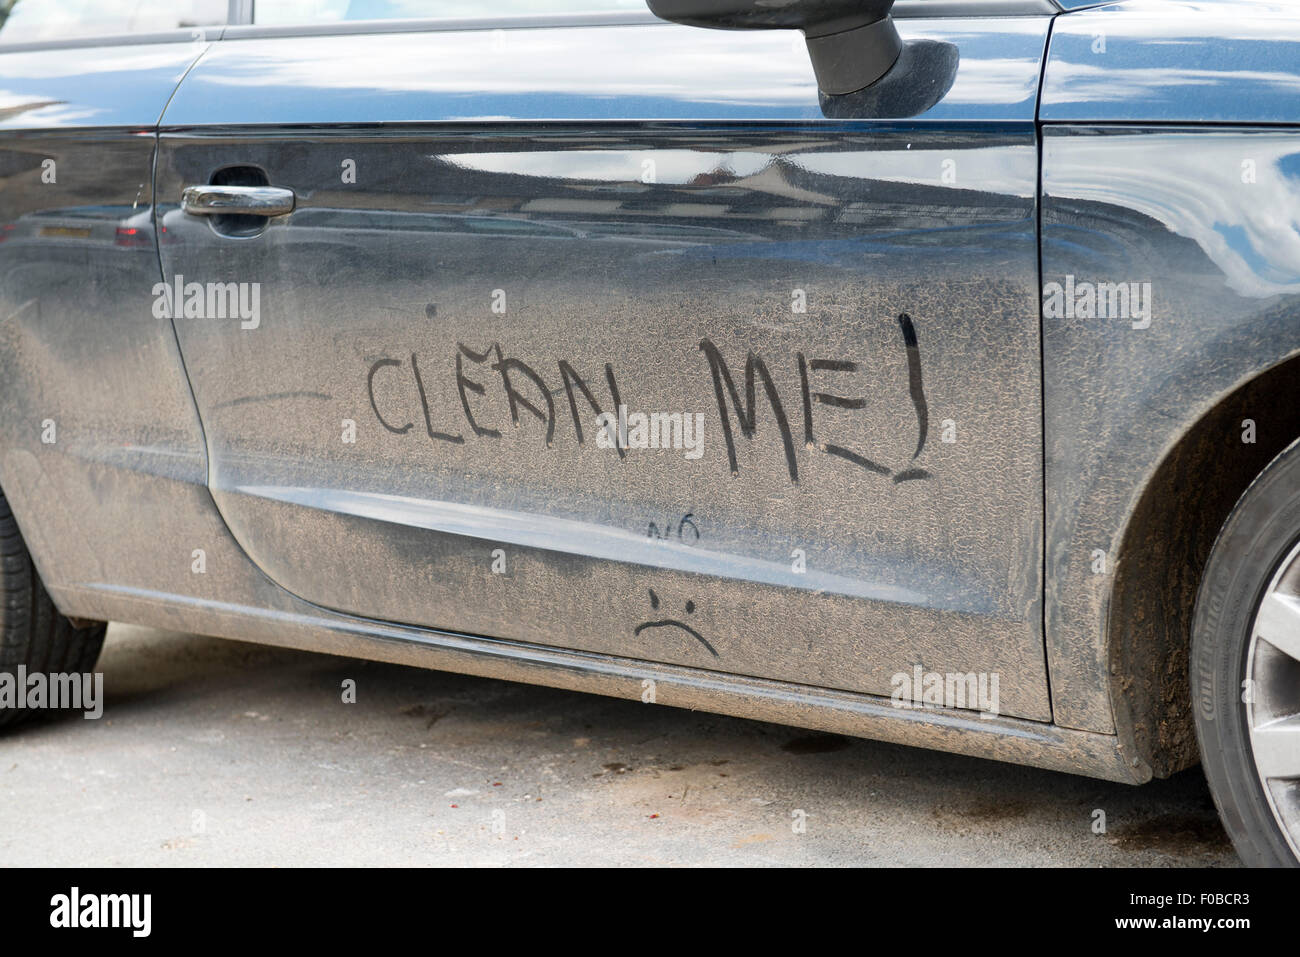 Car Wash Brush >> Clean Me! hand written on dirty car England UK europe Stock Photo: 86303367 - Alamy